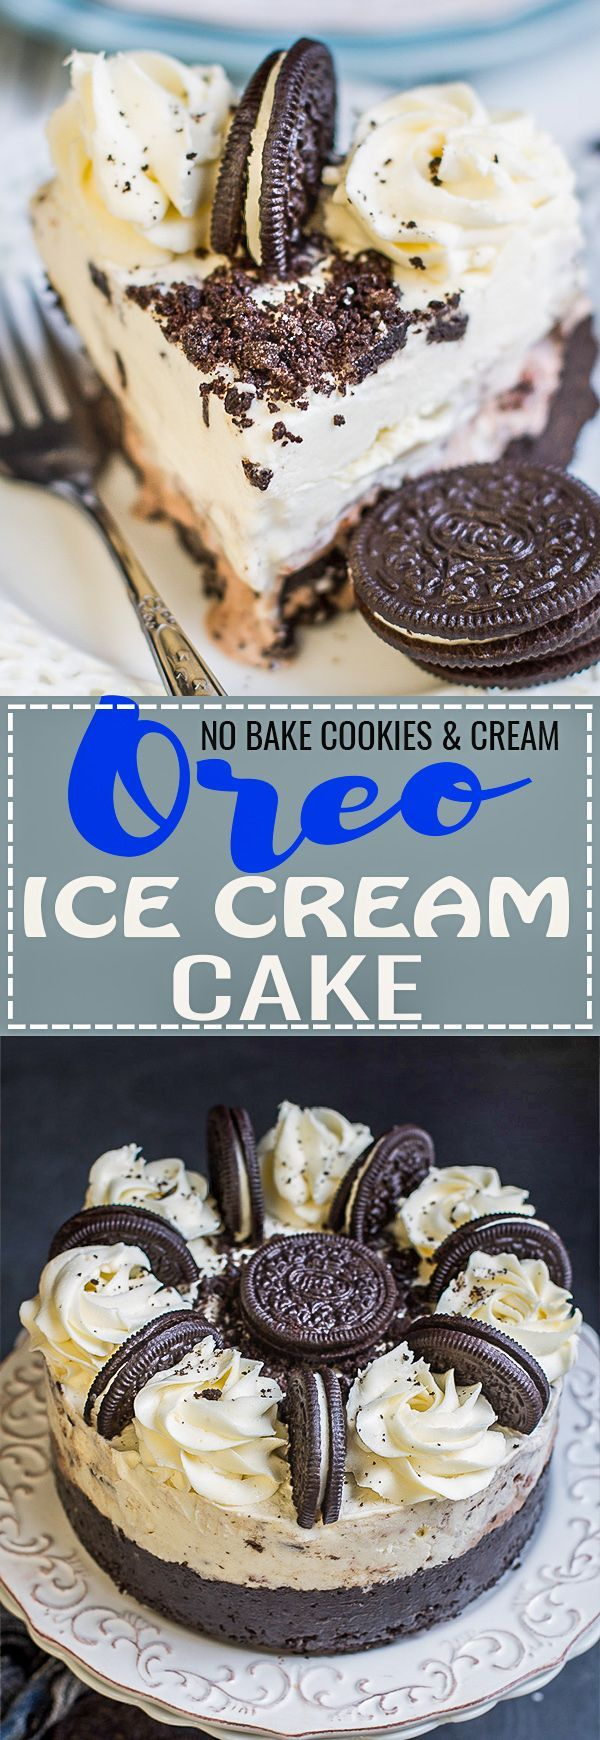 This No BAKE Oreo Cookies and Cream Cake is the perfect easy dessert recipe for all of your birthday, summer party or picnic celebrations. Best of all, it's made with two layers of vanilla and chocolate ice cream and a delicious Oreo cookie crust. You can customize it with extra toppings making it so much better than Dairy Queen!